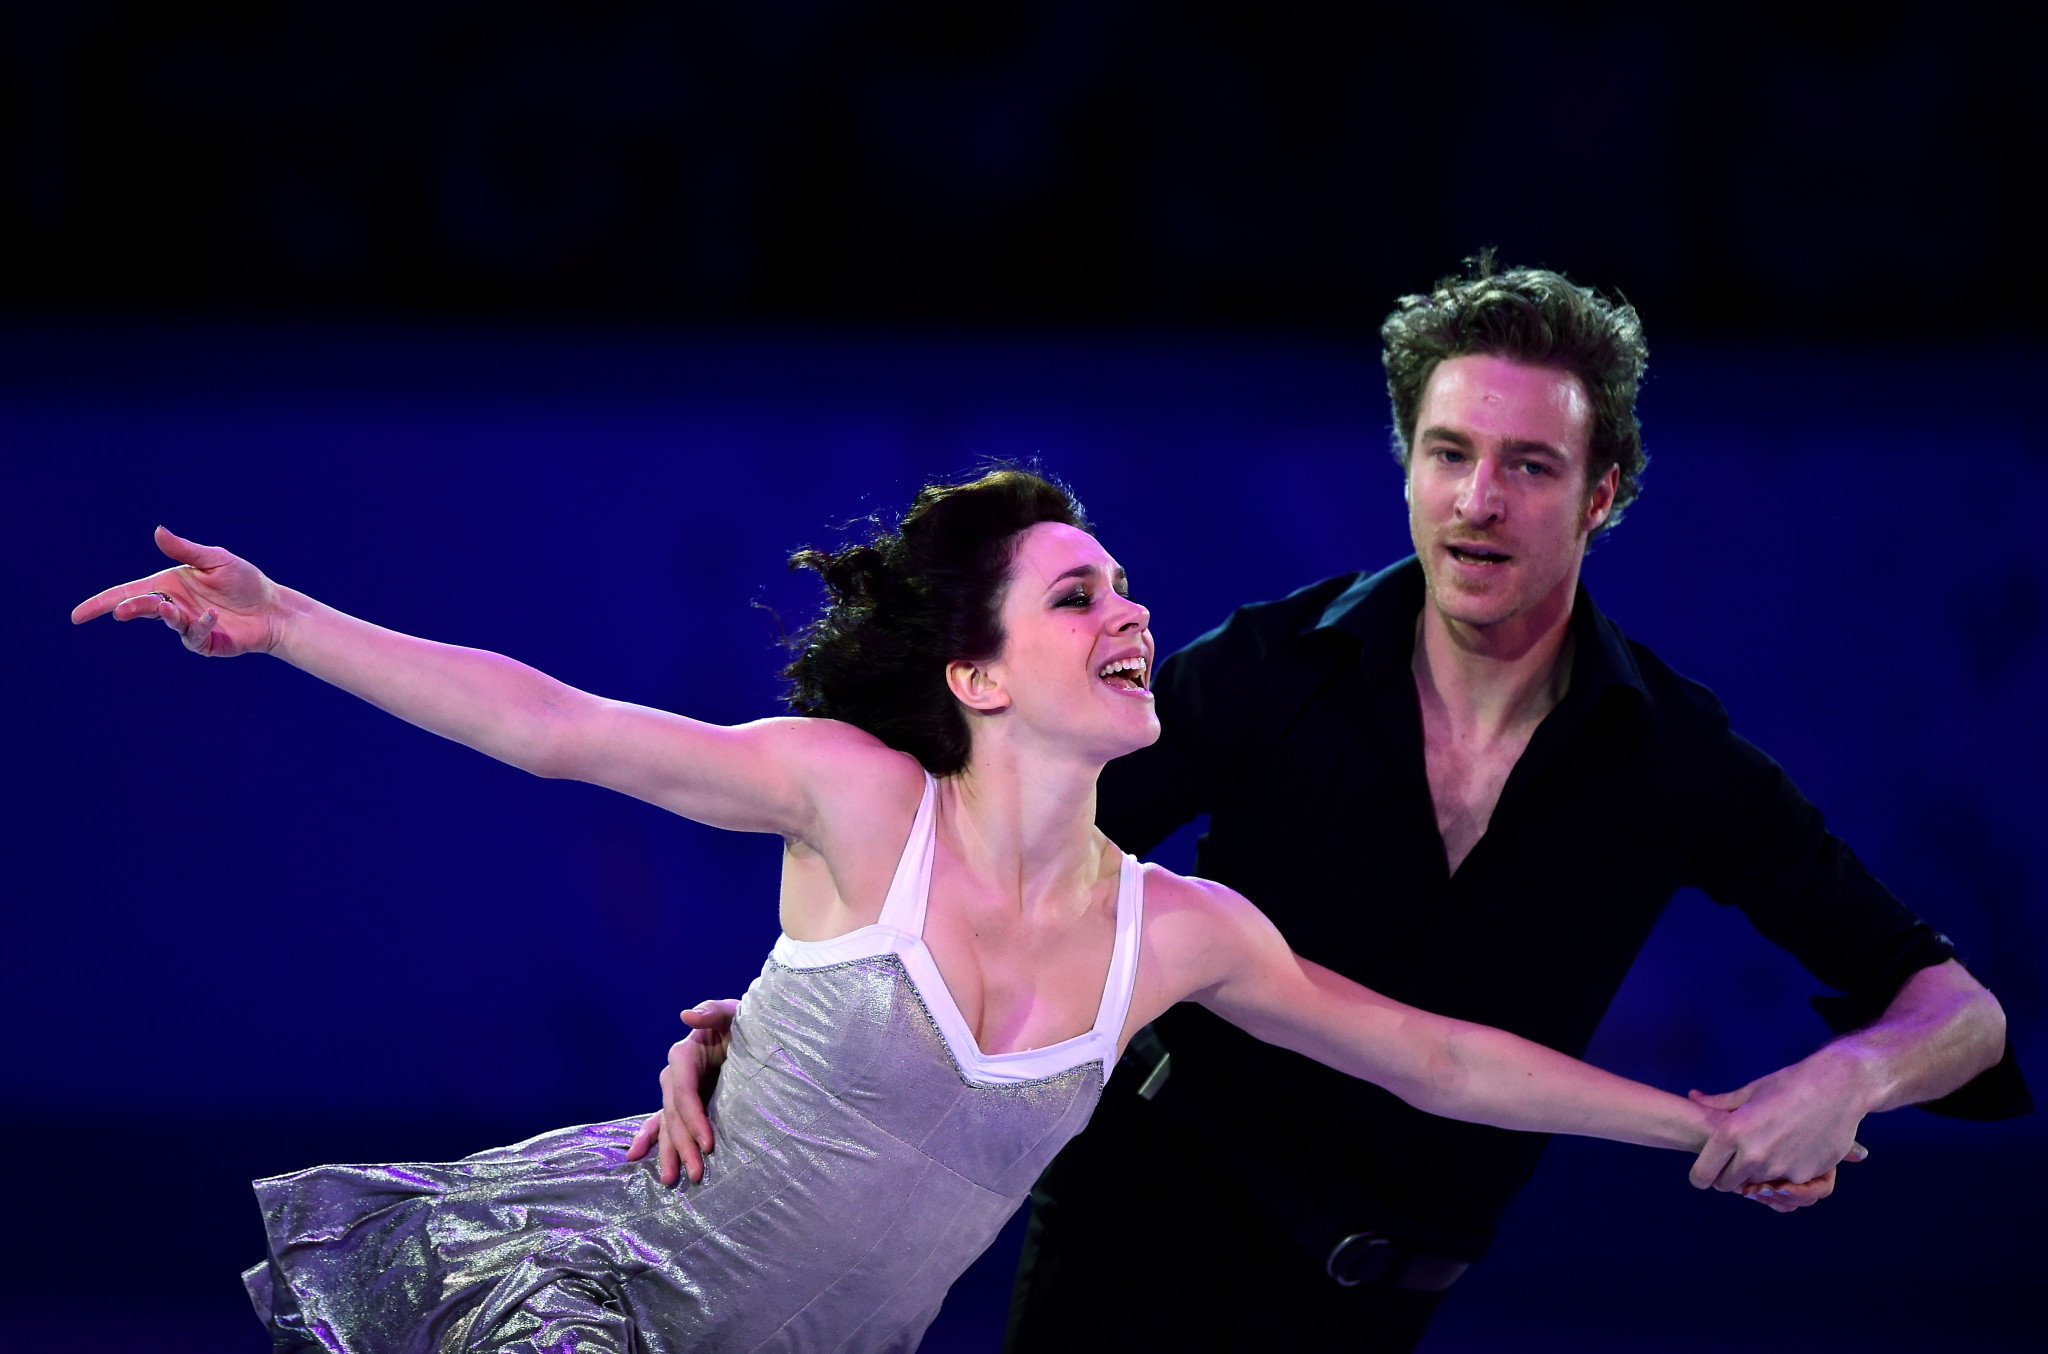 Former ice dancer Nathalie Péchalat was elected French Ice Skating Federation President earlier this year ©Getty Images